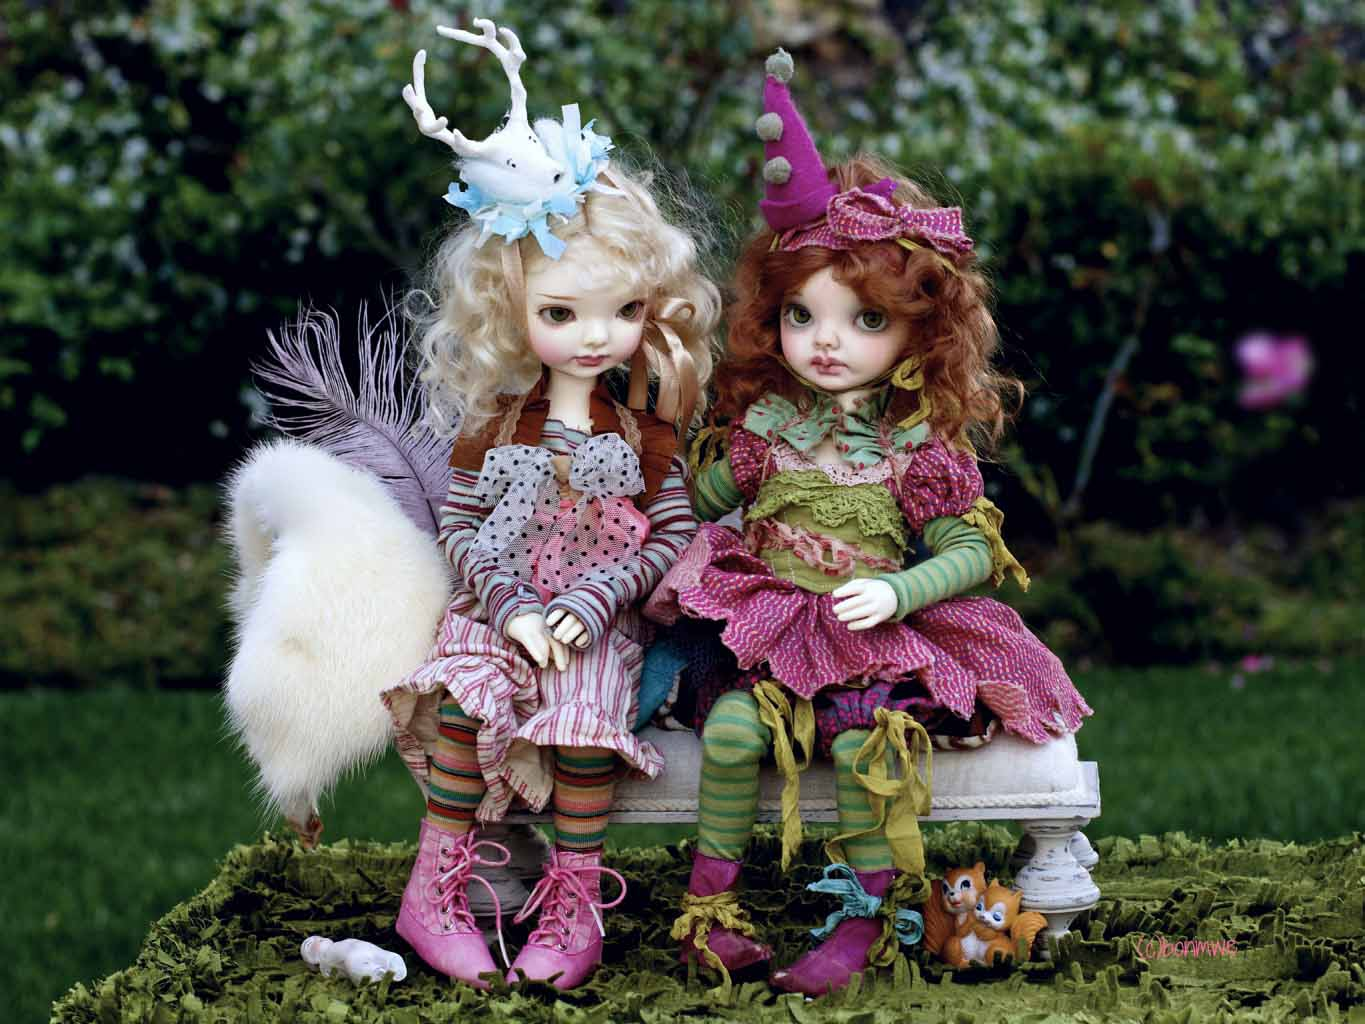 Pair Of Cute Toys Hd Wallpaper: HD Wallpapers: Toys Doll Wallpapers